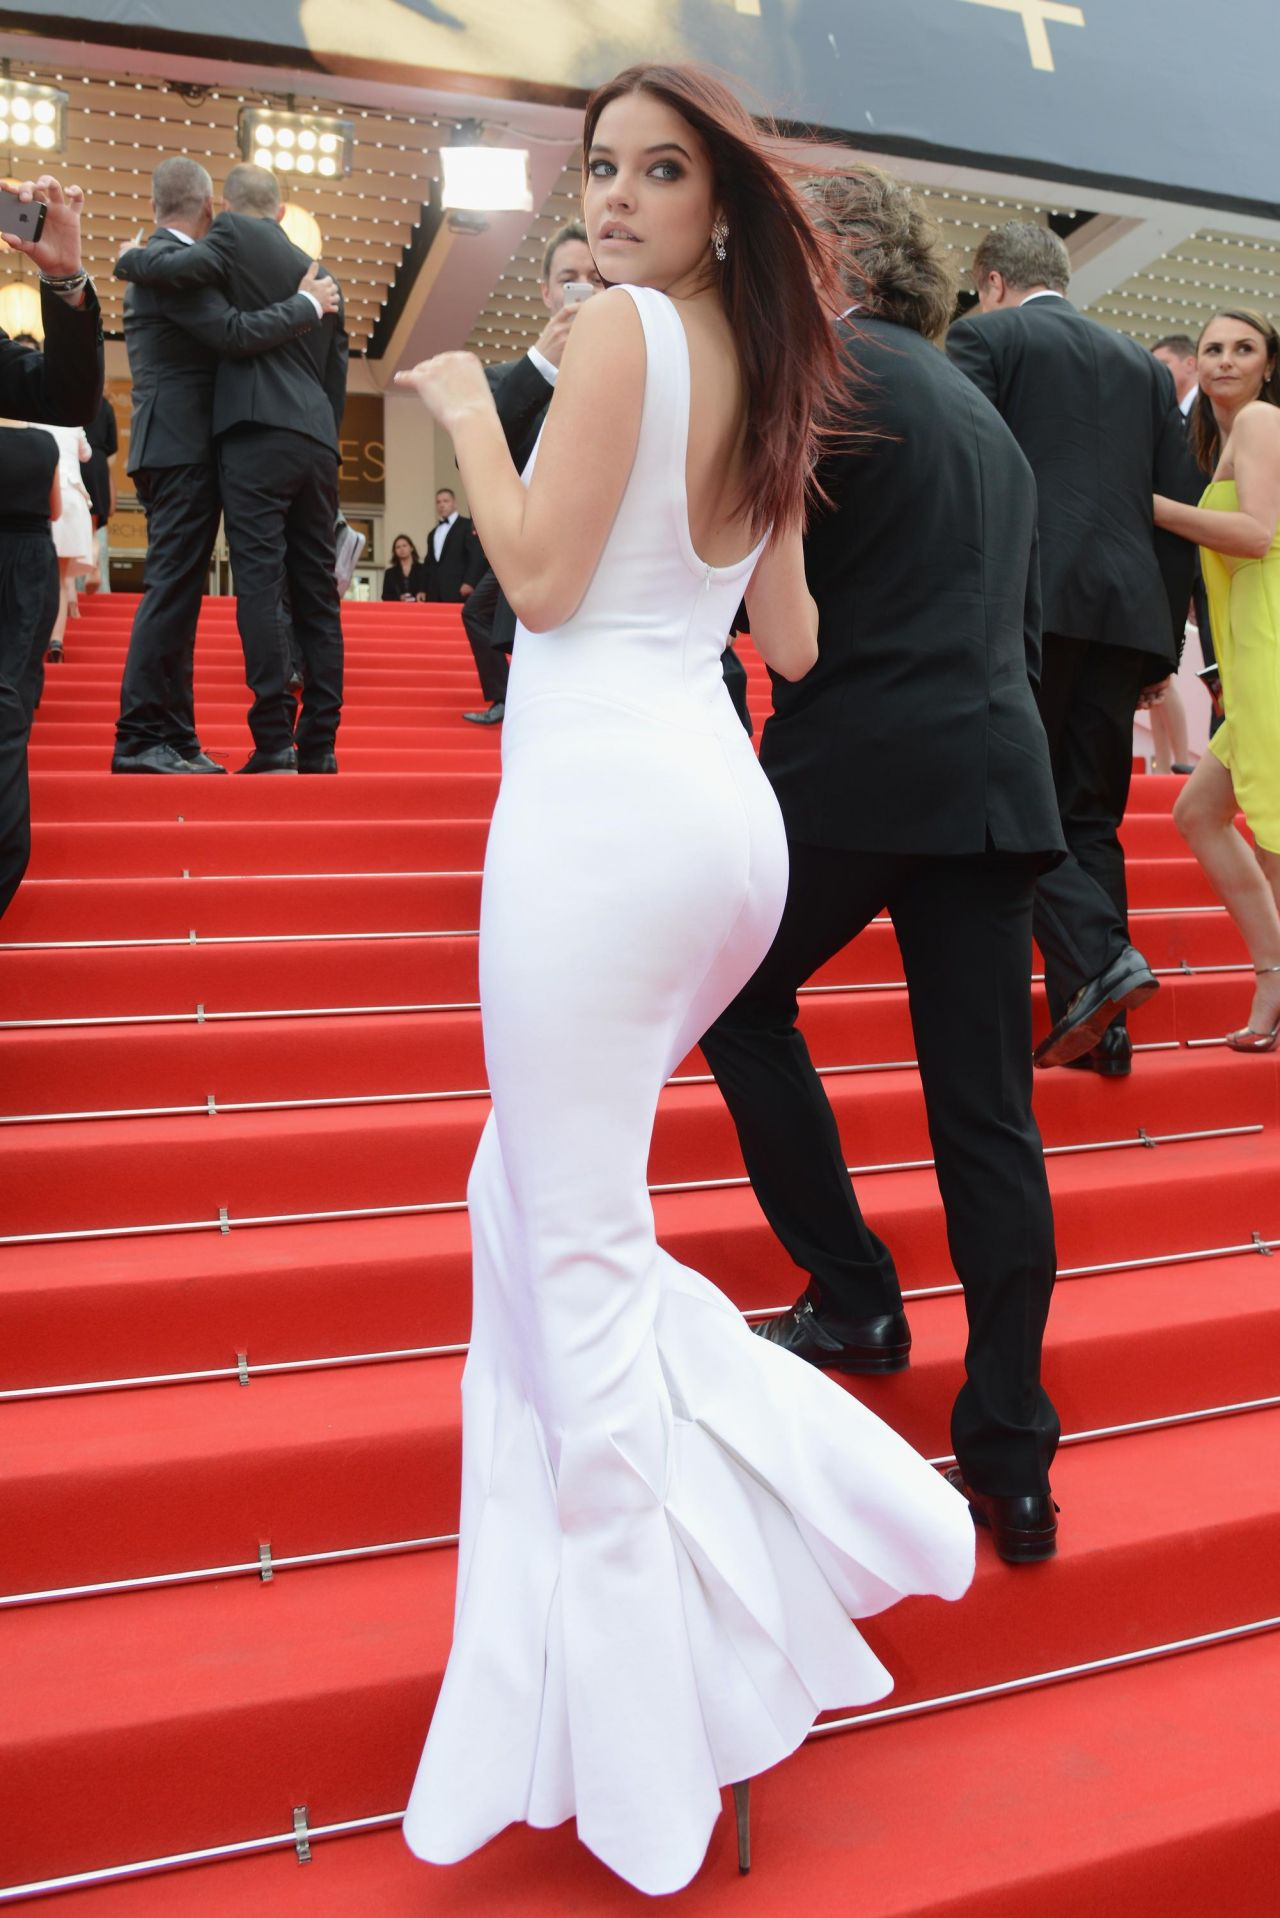 Barbara palvin 39 the search 39 premiere 2014 cannes film festival - Barbara palvin red carpet ...